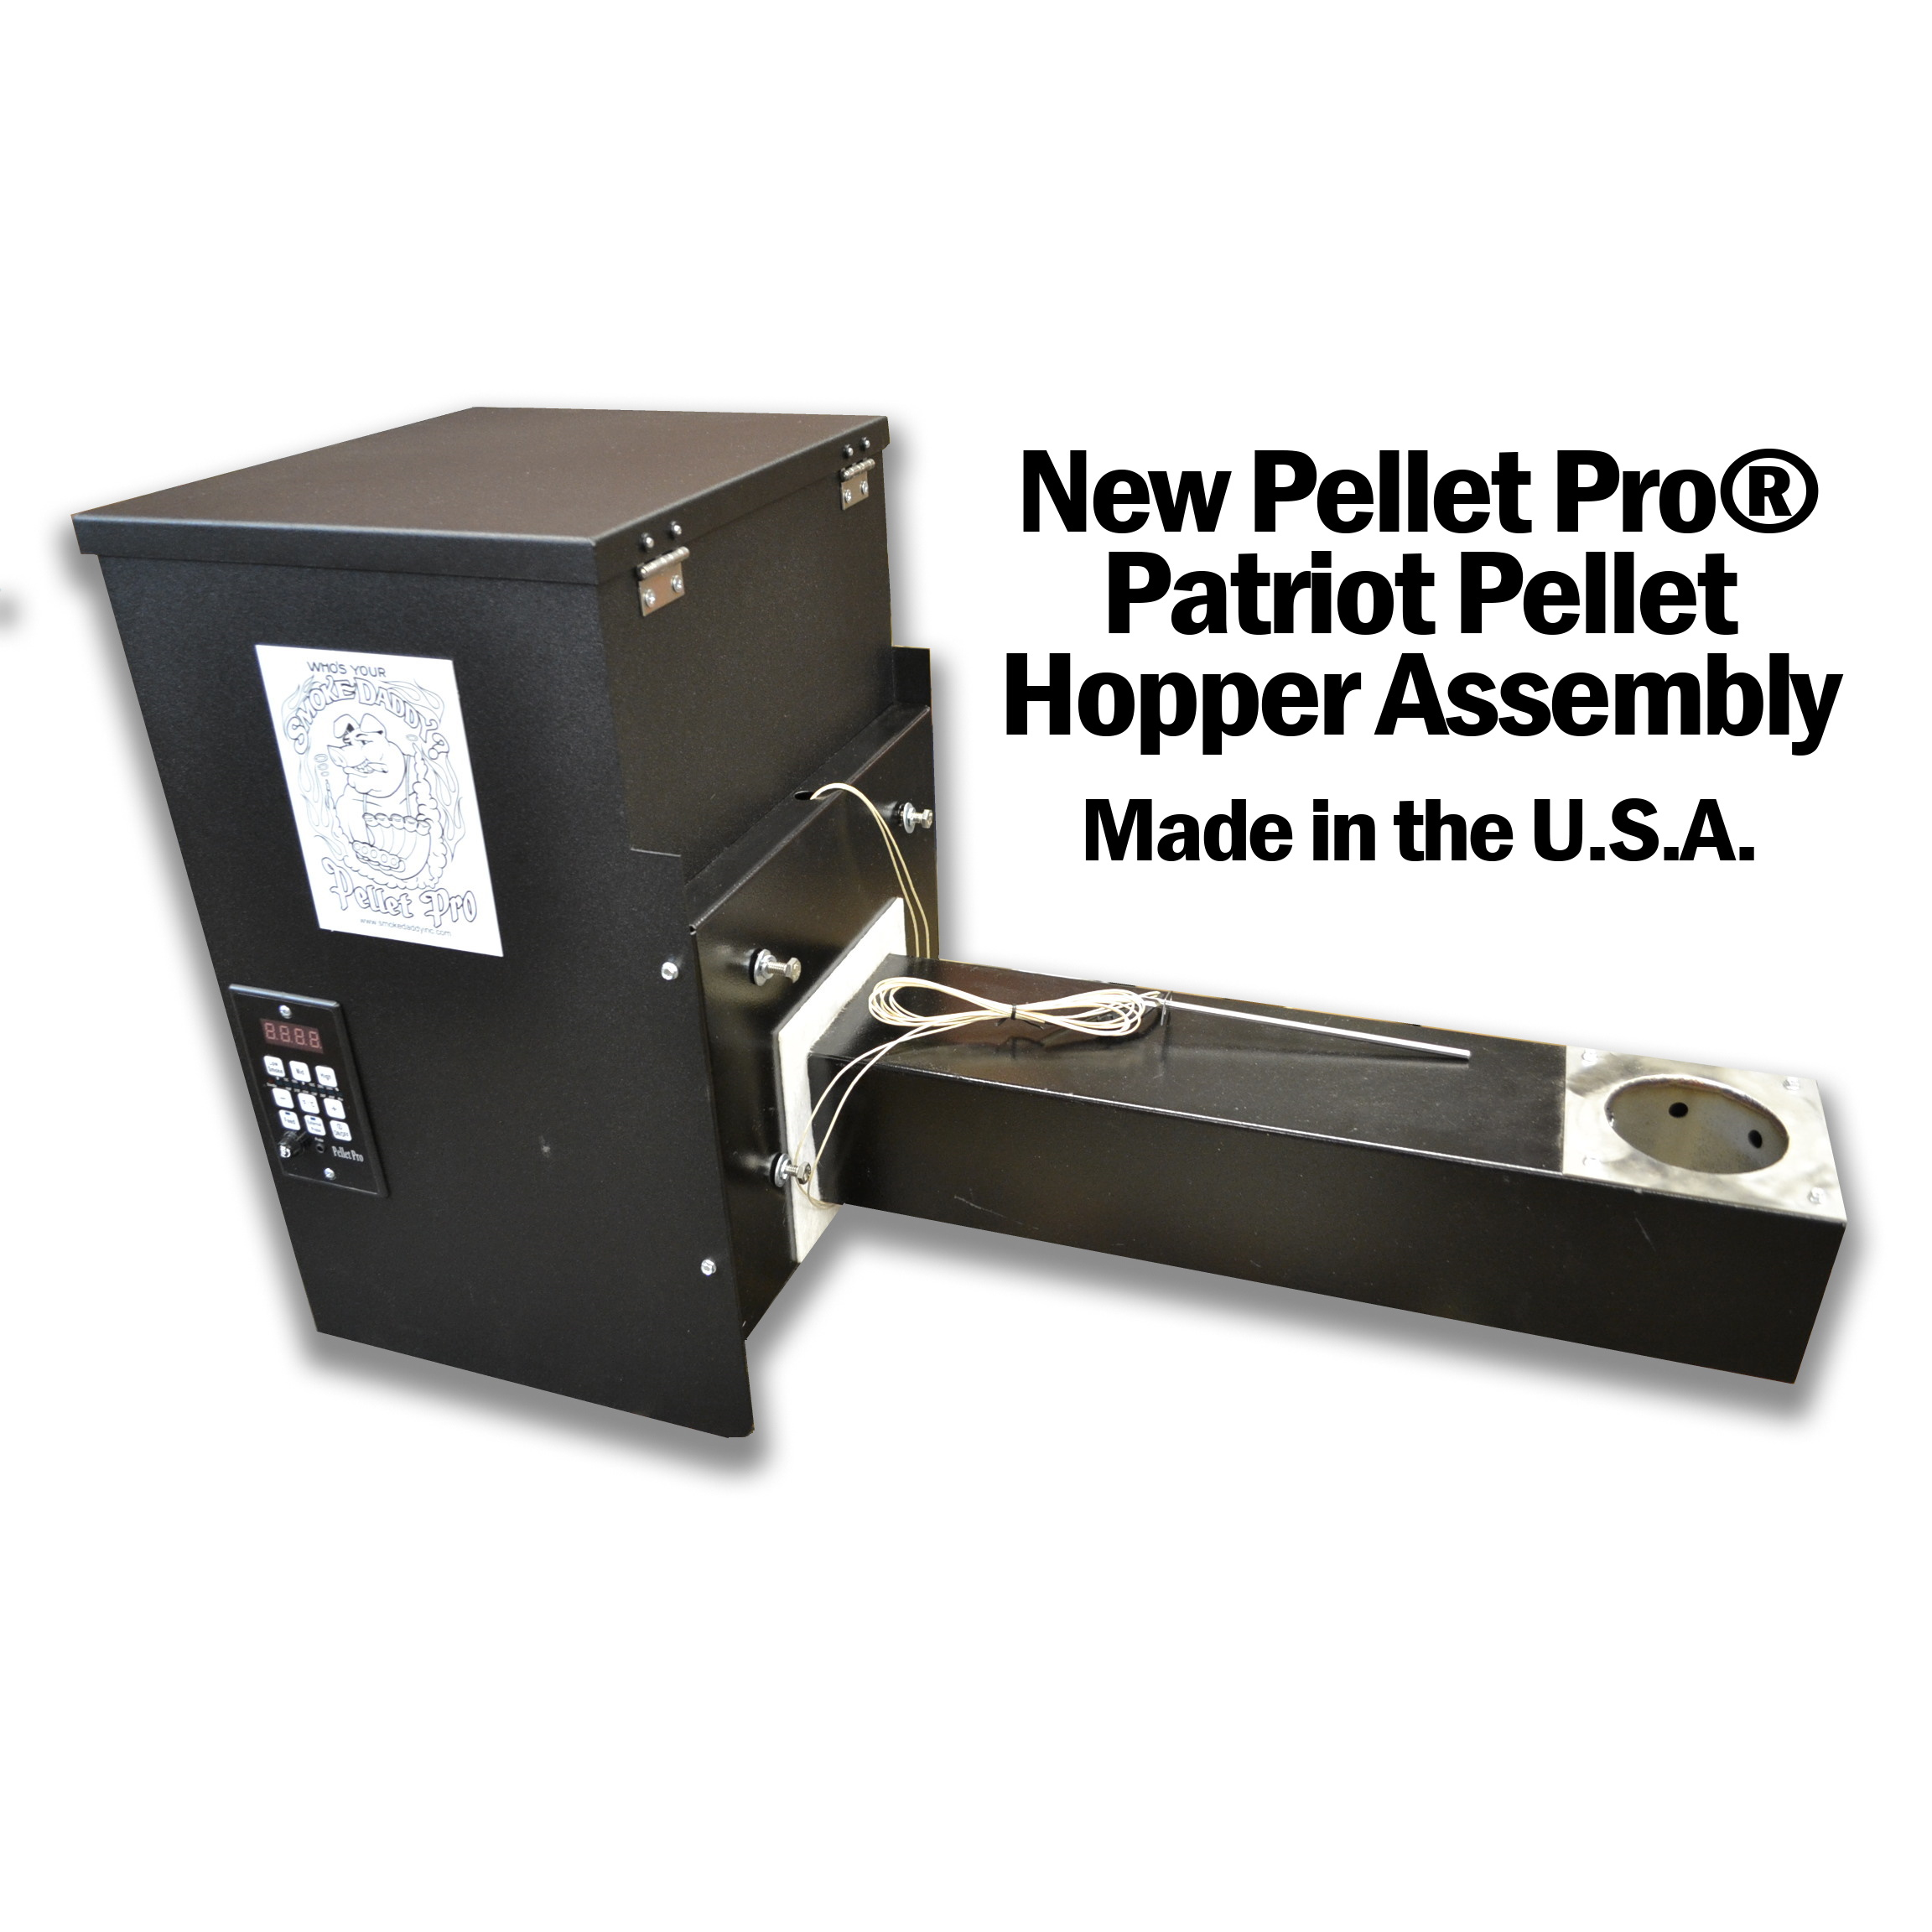 *NEW* Heavy Duty Pellet Pro® Patriot Pellet Hopper Assembly – Made in the U.S.A.